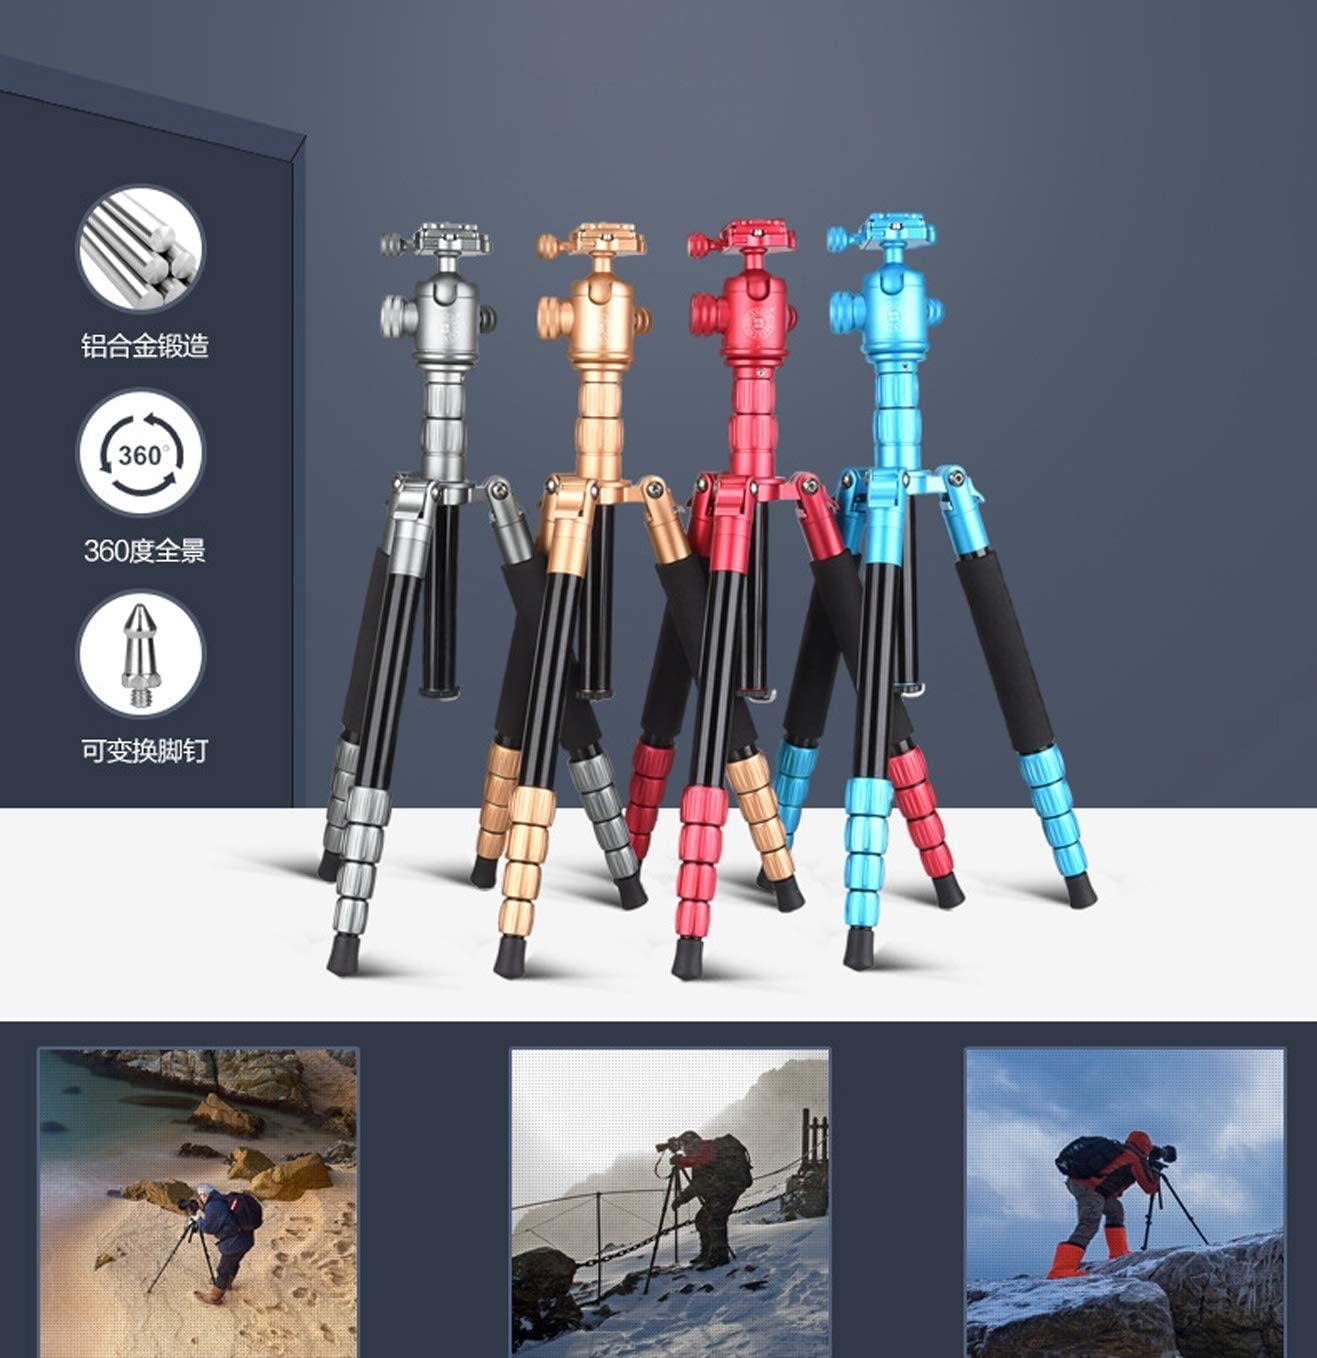 Color : Black LLluckyHW Overhead Tripod Aluminum Video Camera Tripod Monopod 360 Degree Panorama Ball Head Bubble Level Outdoor Compact Cameras Up to 22 Pounds